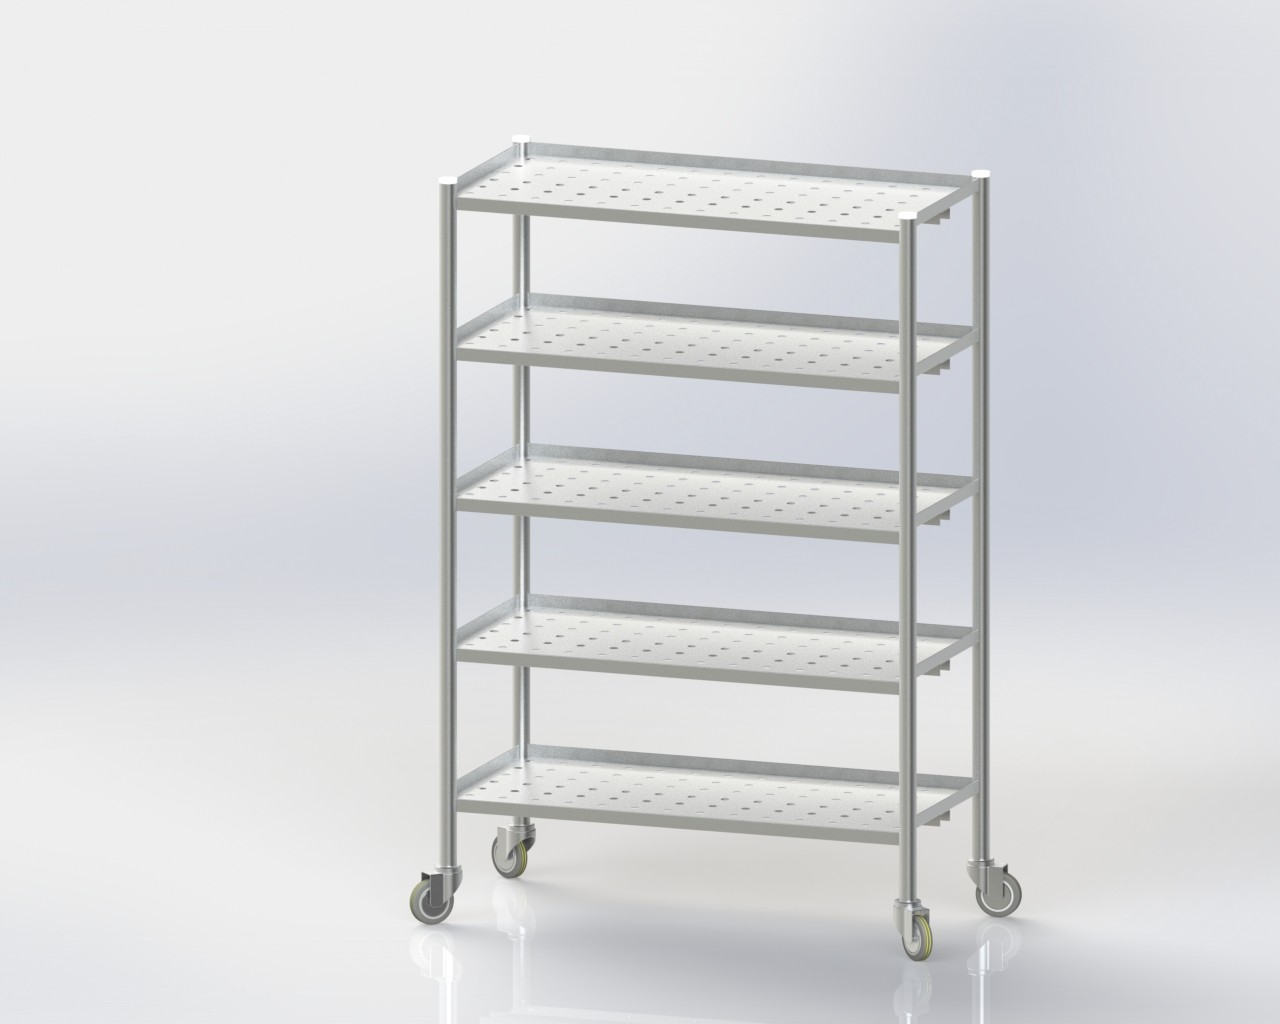 5 Storage Rack/Perforated/Mobile